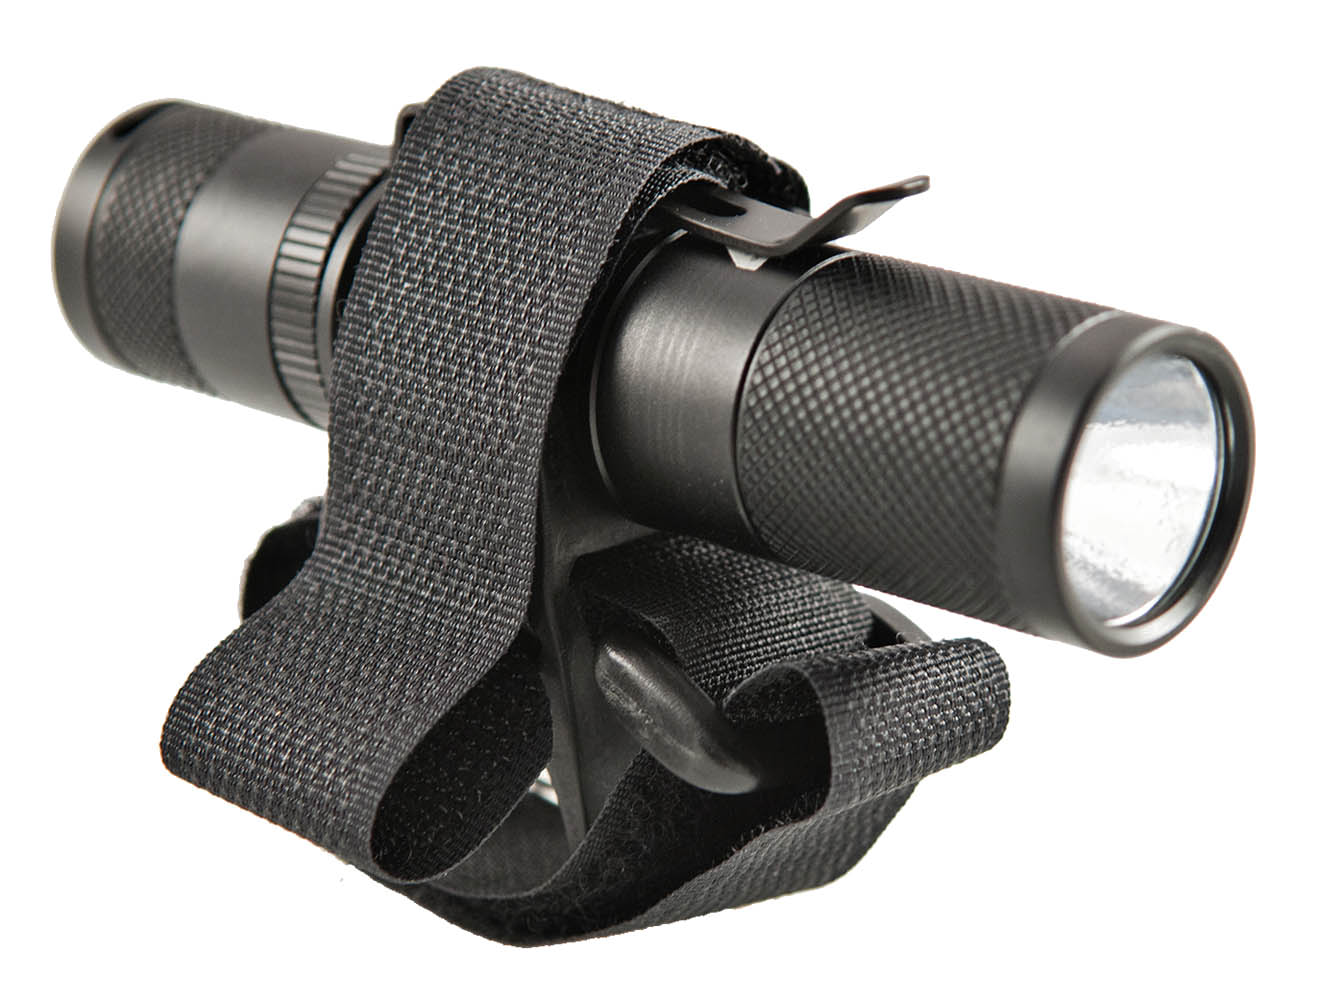 Foursevens TwoFish Lockblock Flashlight Mount